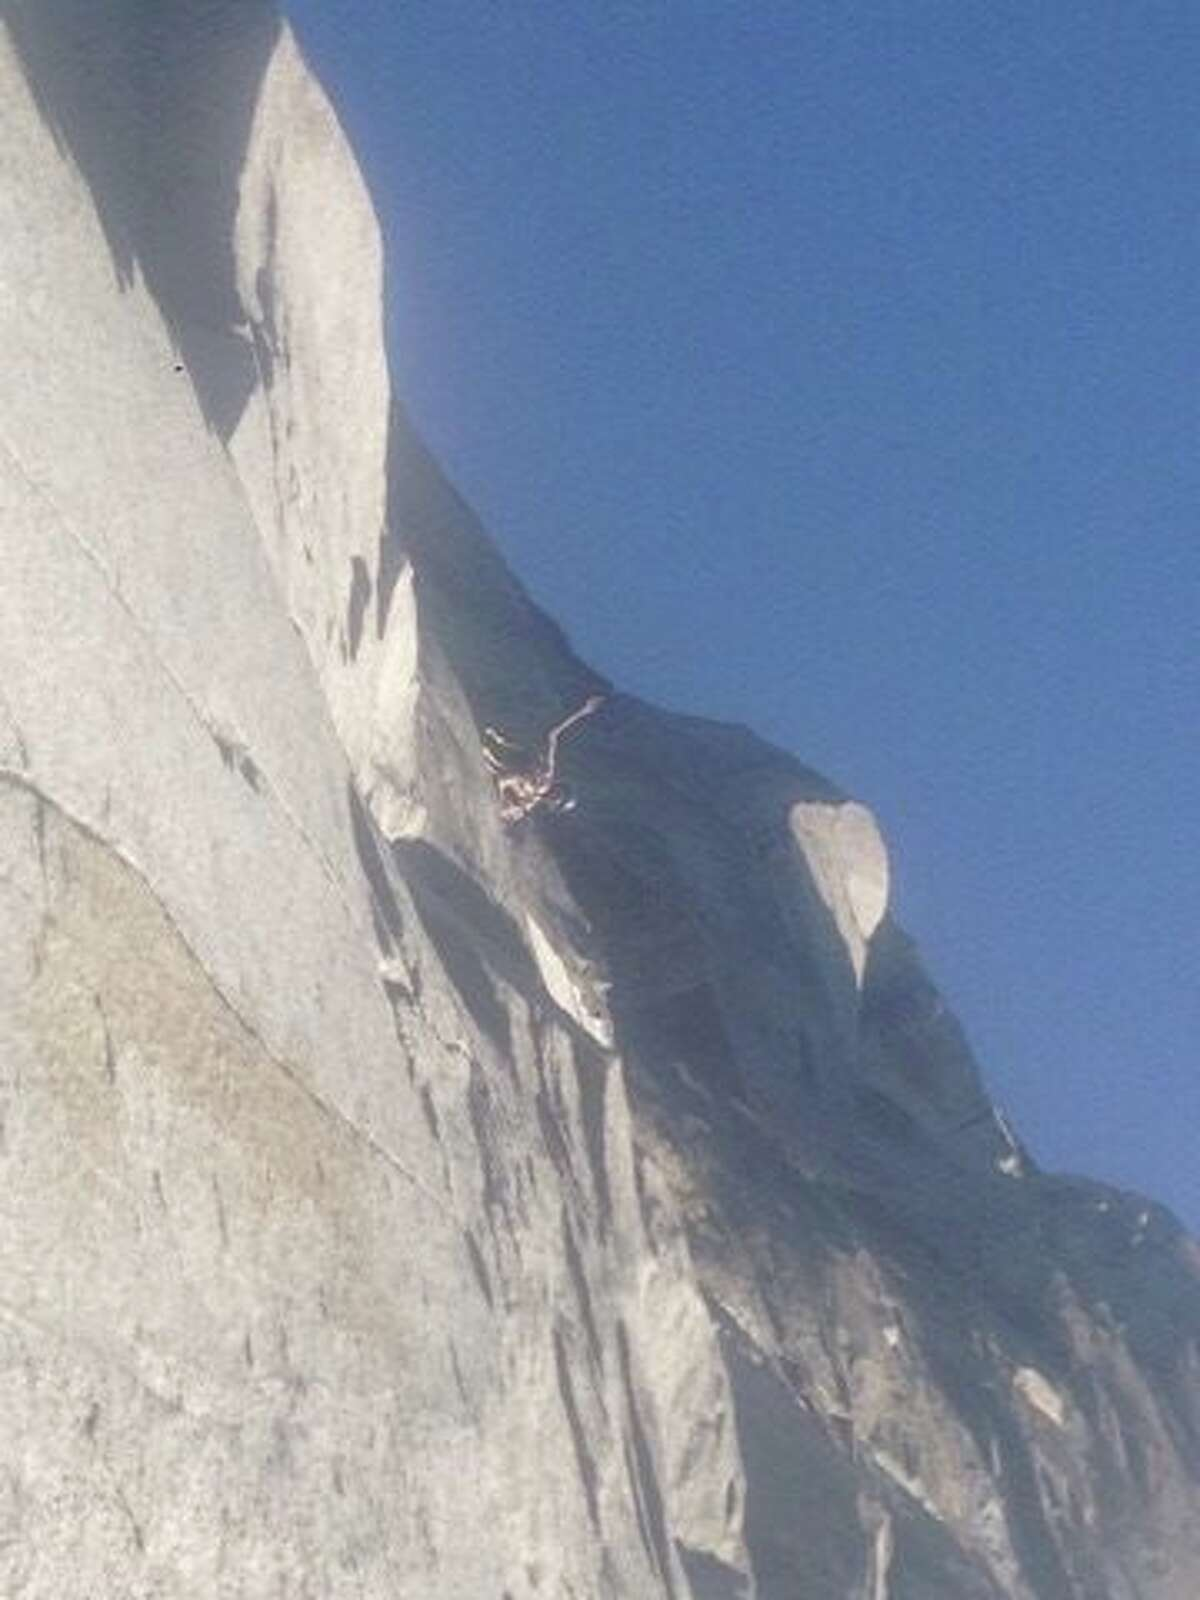 For the first time ever, climbers ascend El Capitan naked